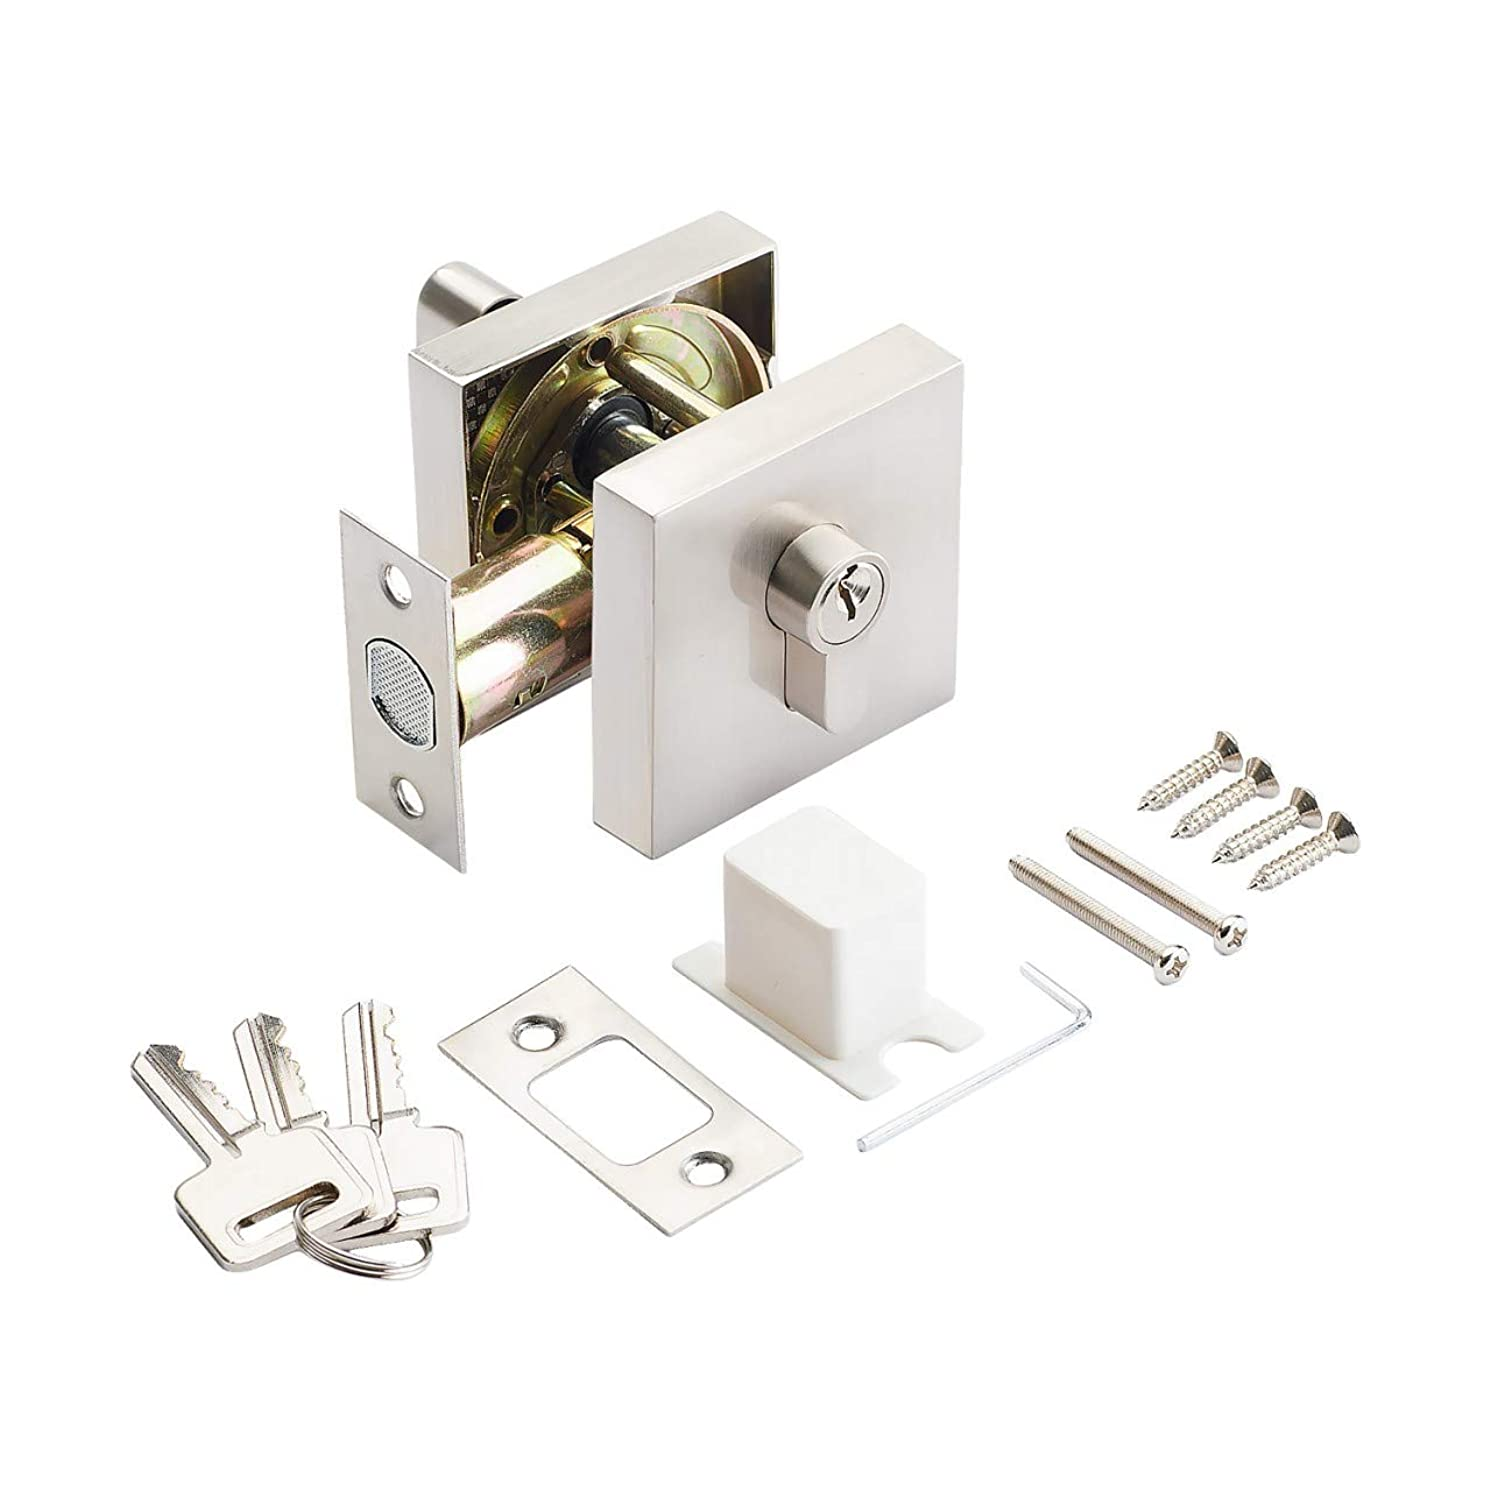 AVALON 0891 – Deadbolt (Square Rosette) in Satin Nickel Finish